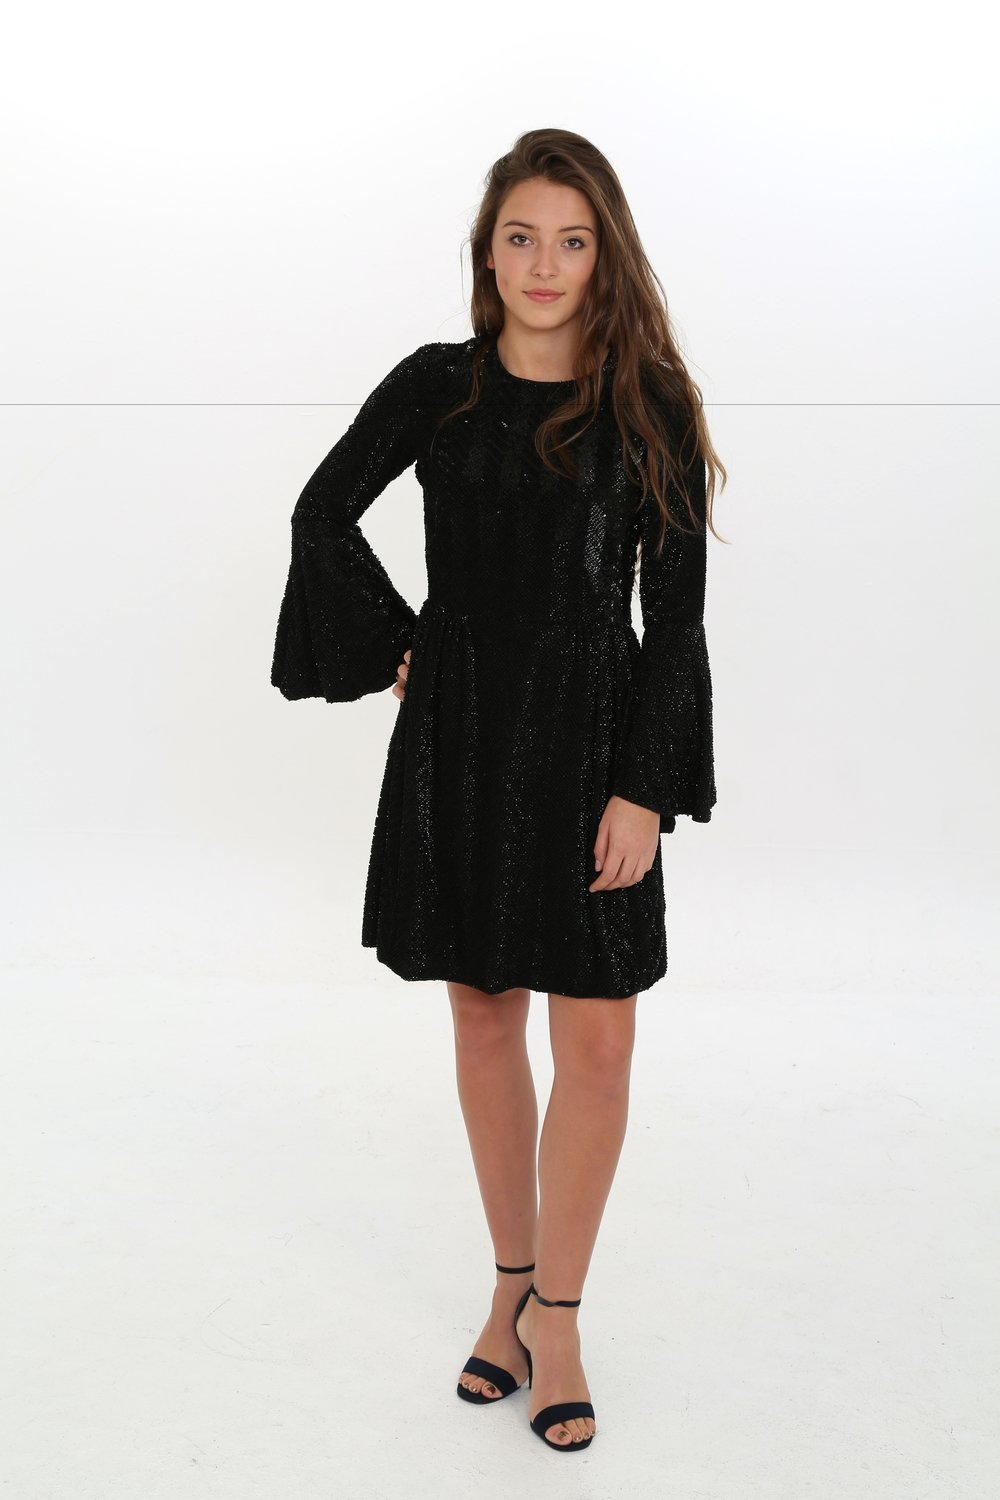 Zinnia Black Dress